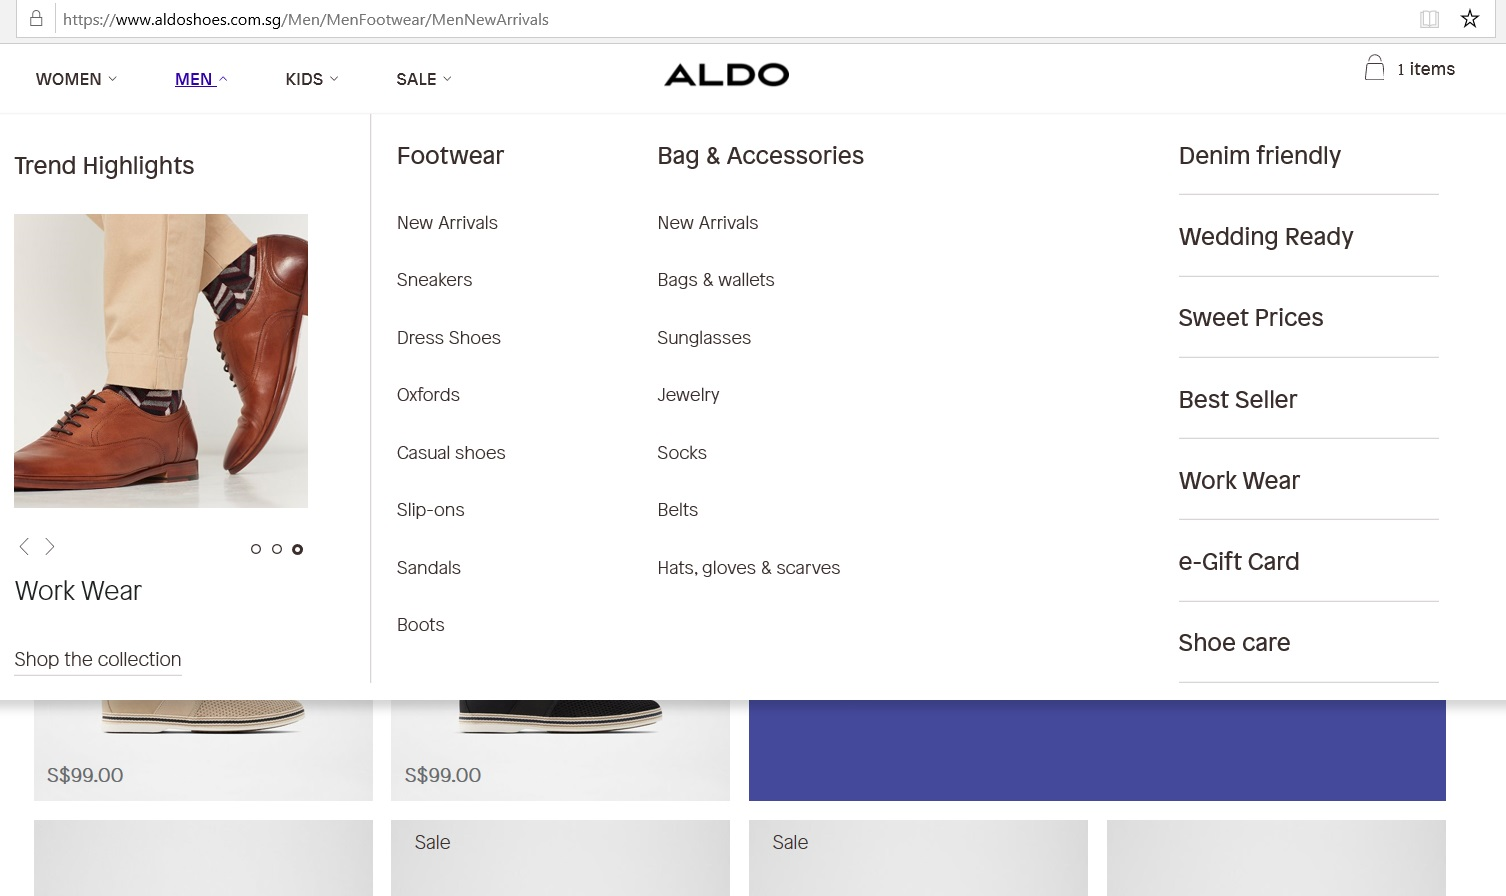 Aldo product category dropdown for Men.